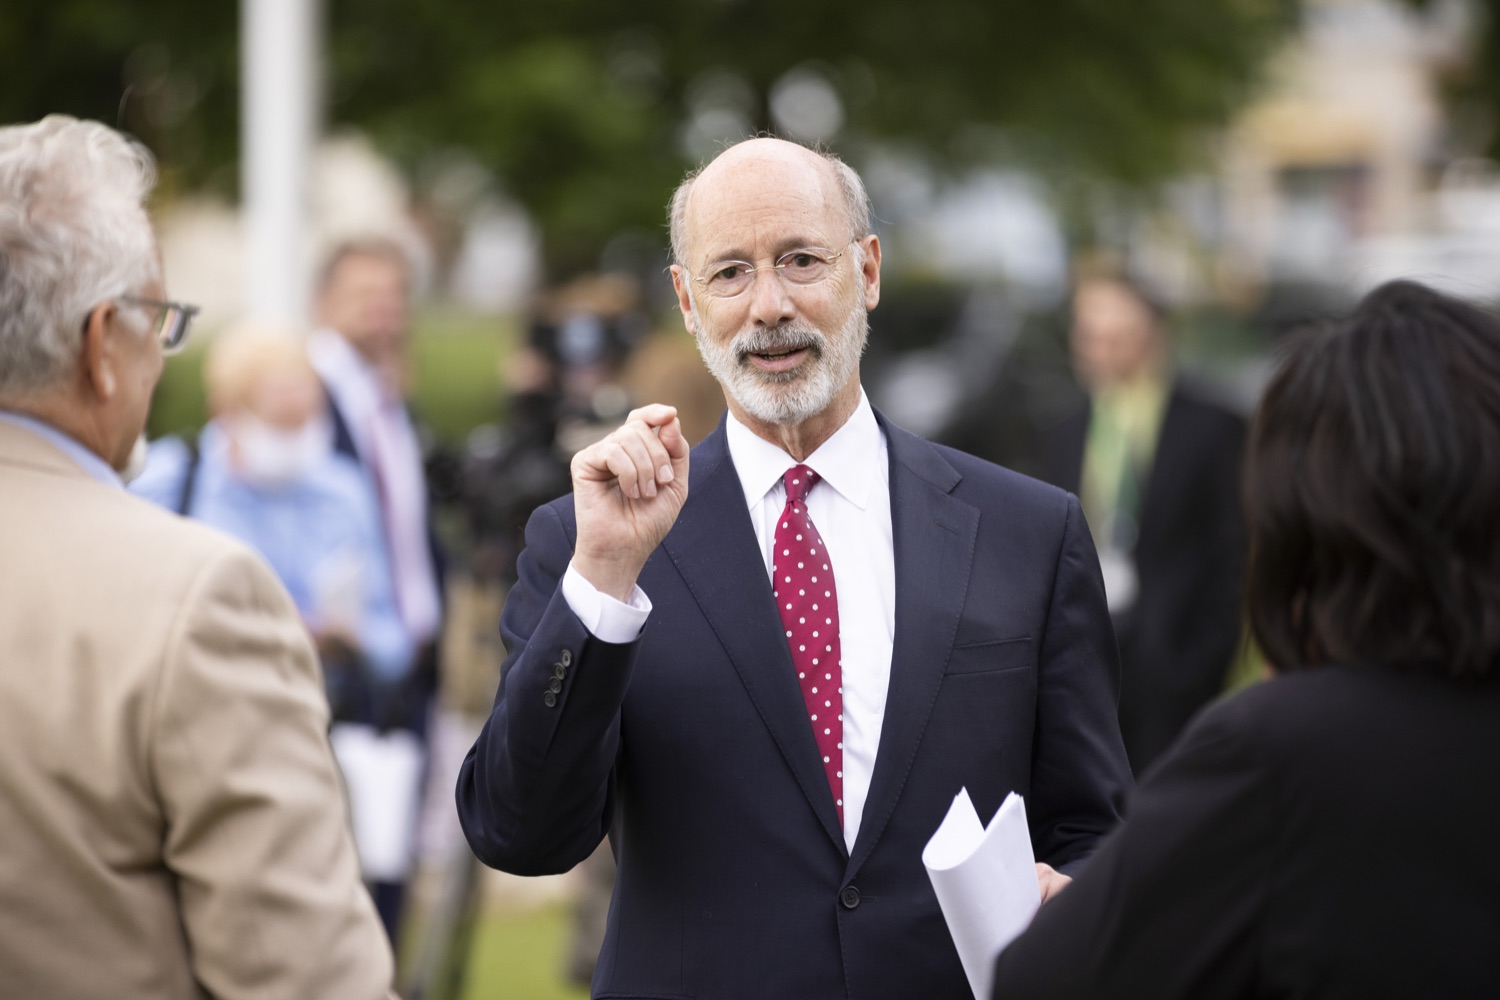 """<a href=""""https://filesource.wostreaming.net/commonwealthofpa/photo/18796_gov_charterSchool_dz_011.jpg"""" target=""""_blank"""">⇣Download Photo<br></a>Pennsylvania Governor Tom Wolf speaking with school administrators.  With overwhelming support among school districts for his charter school accountability plan, Governor Tom Wolf visited J.P. McCaskey High School in Lancaster today to discuss his bipartisan proposal that saves an estimated $395 million a year. Lancaster, PA  June 01, 2021"""